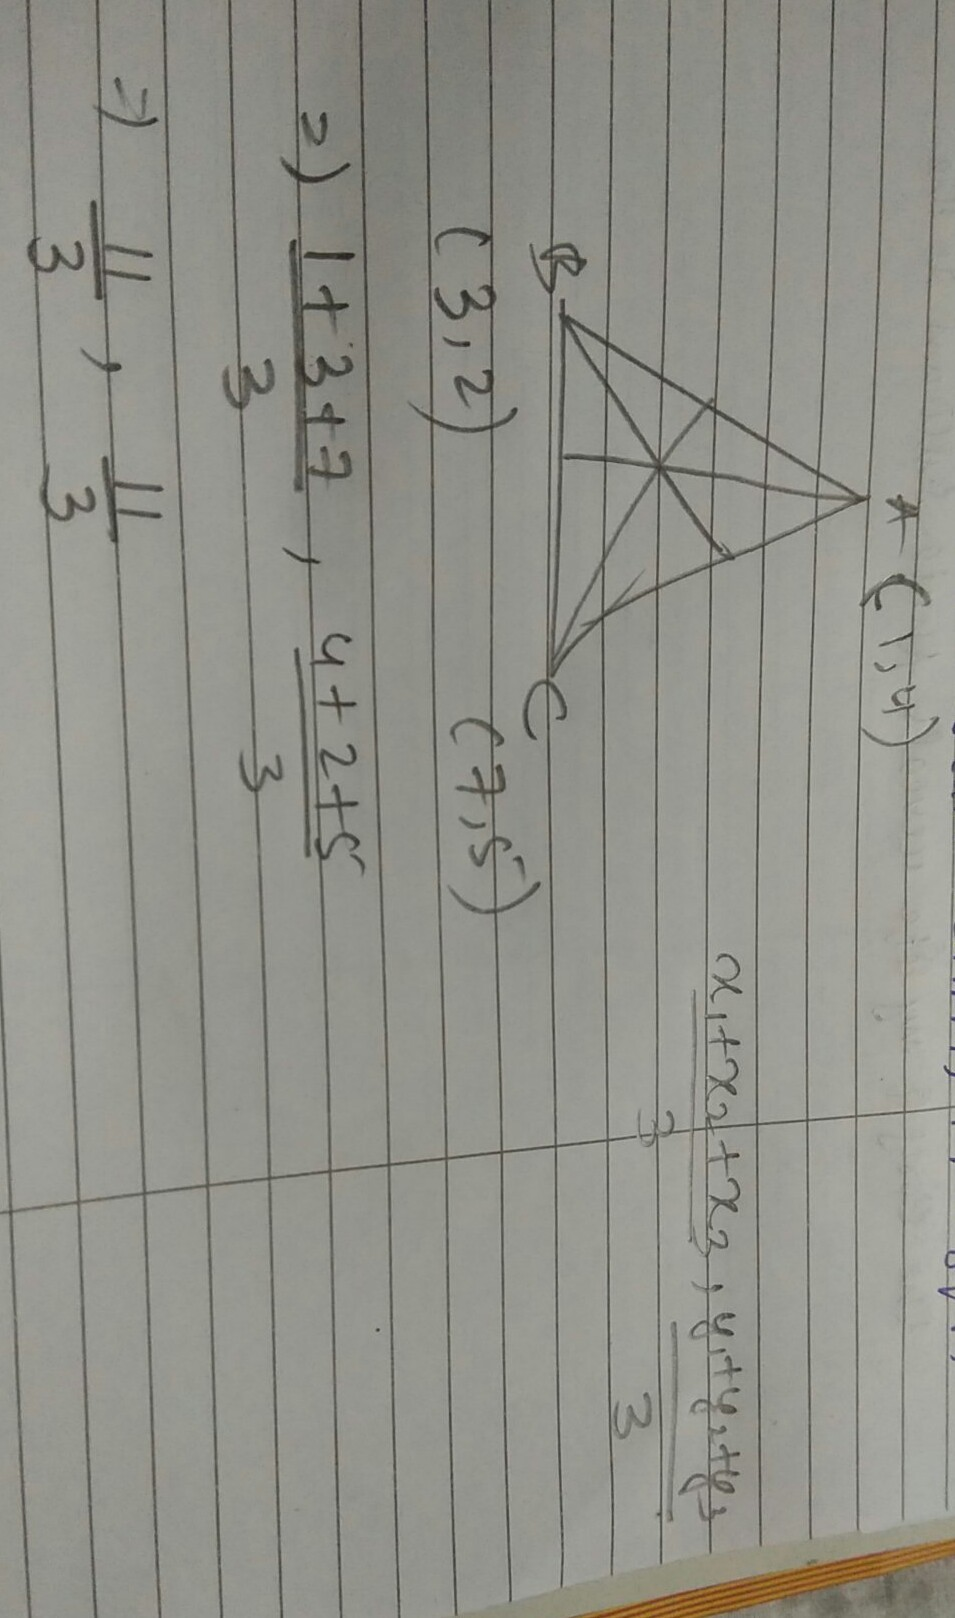 A(1,4)B(3,2)&C(7,5) are vertices of a triangle ABC. Find ...